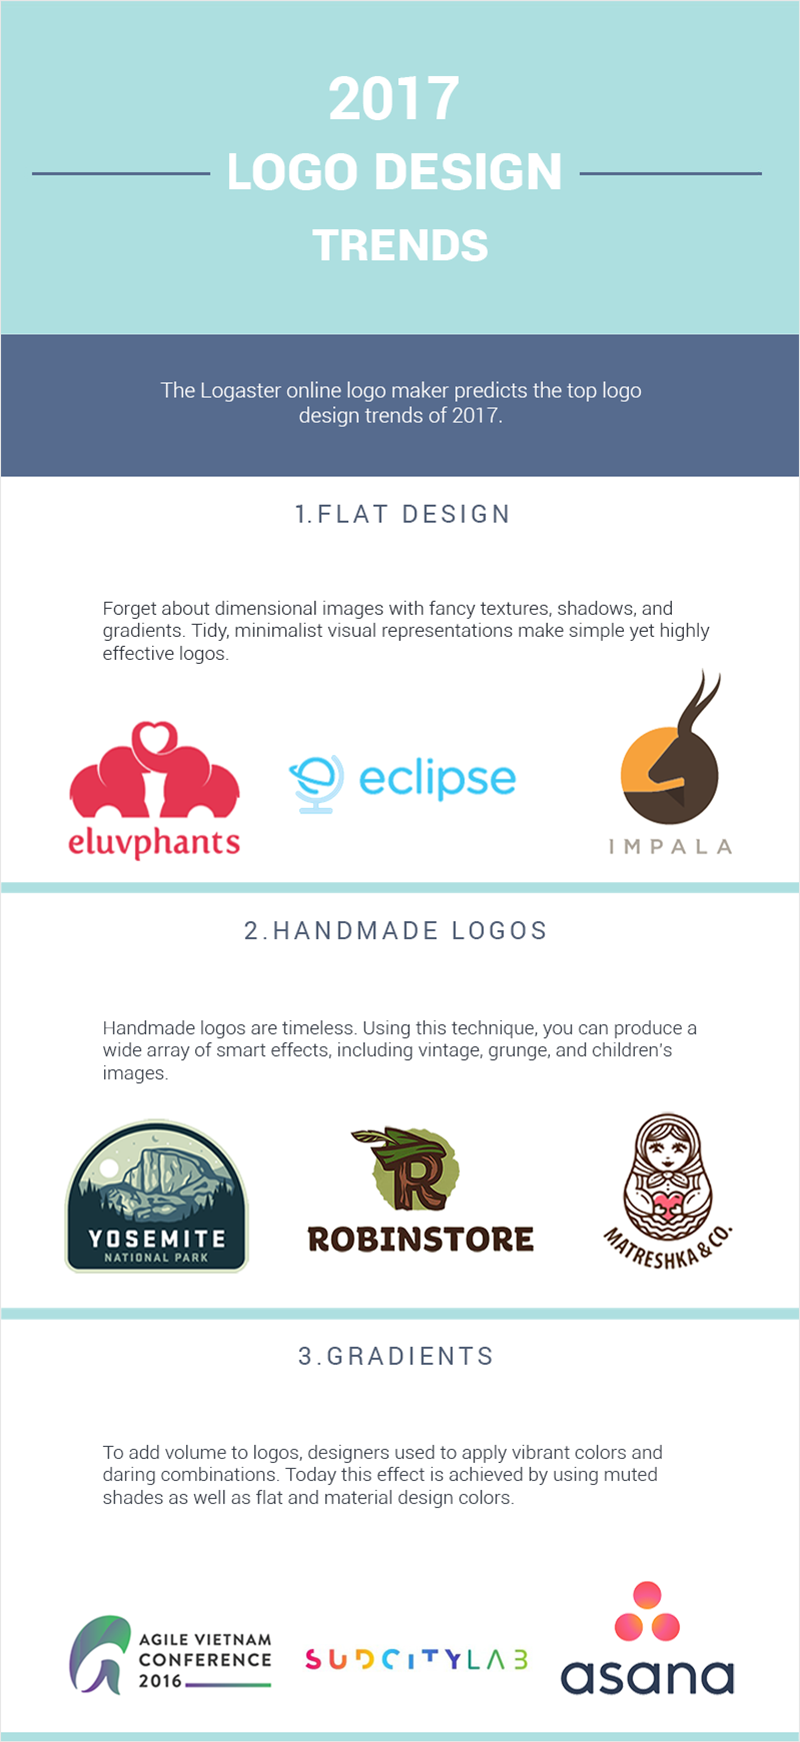 Graphic-Design-logo-design-trends-infographic